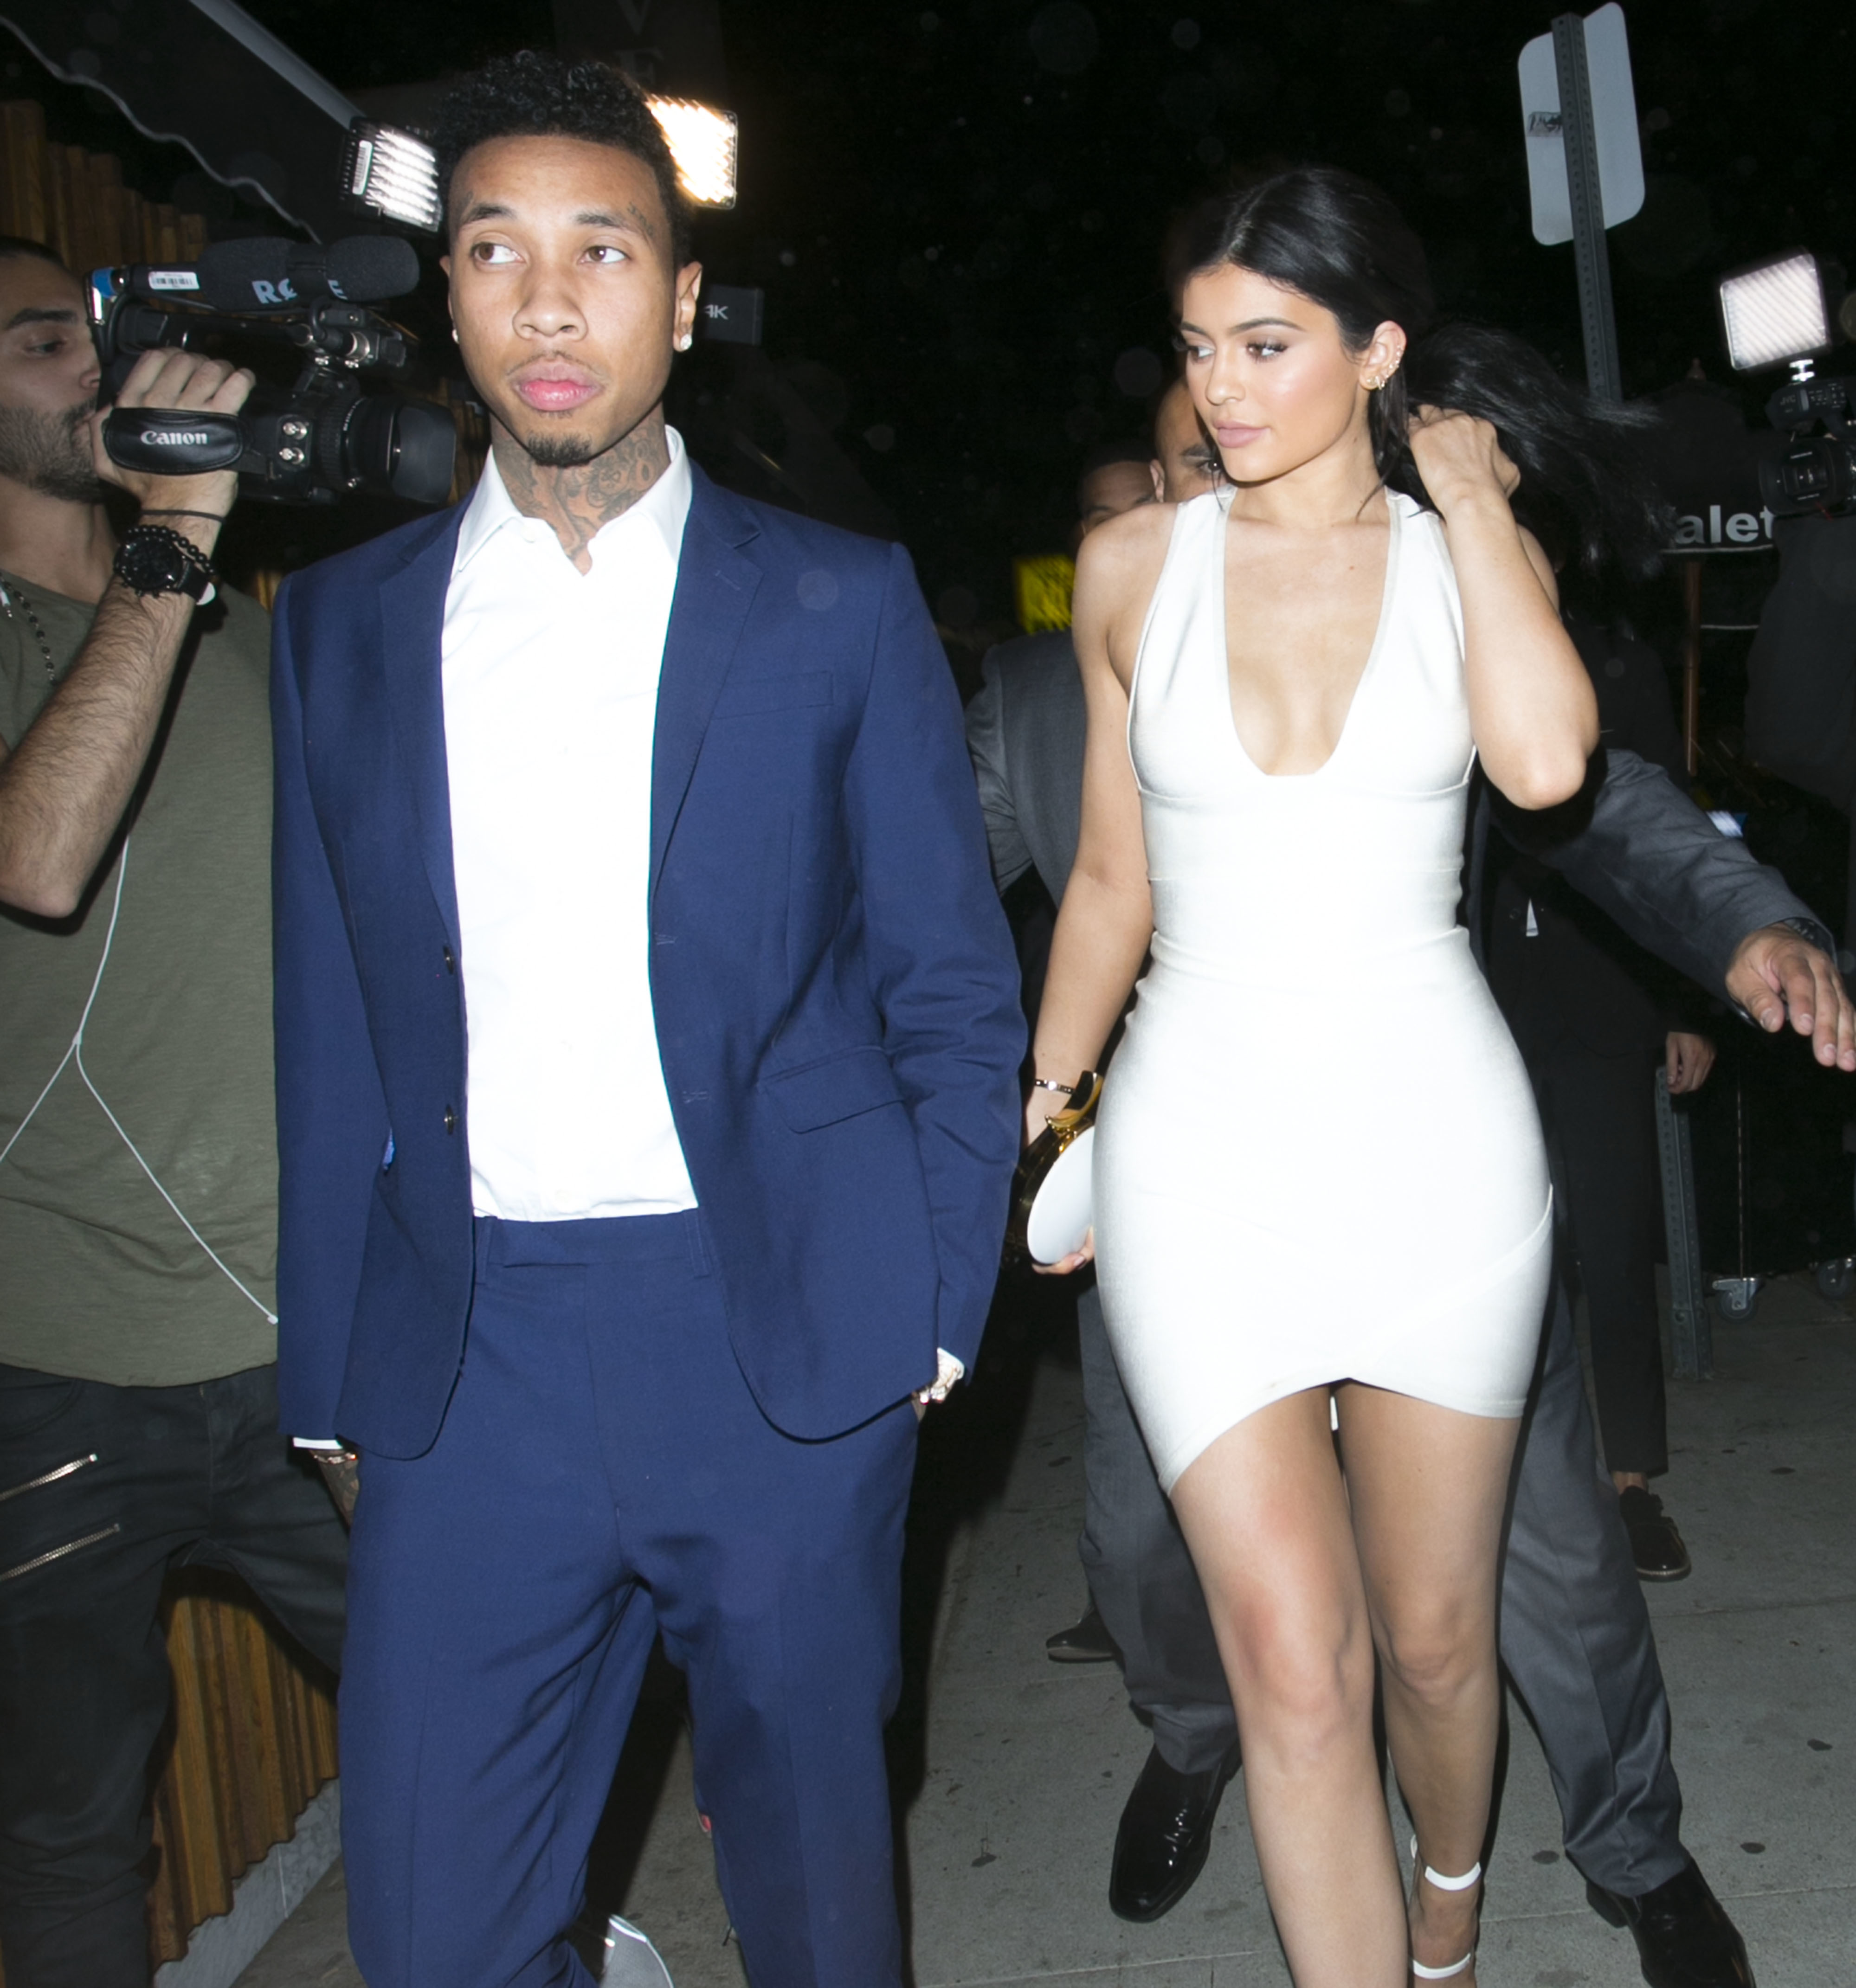 Tyga won't marry Kylie Jenner anytime soon